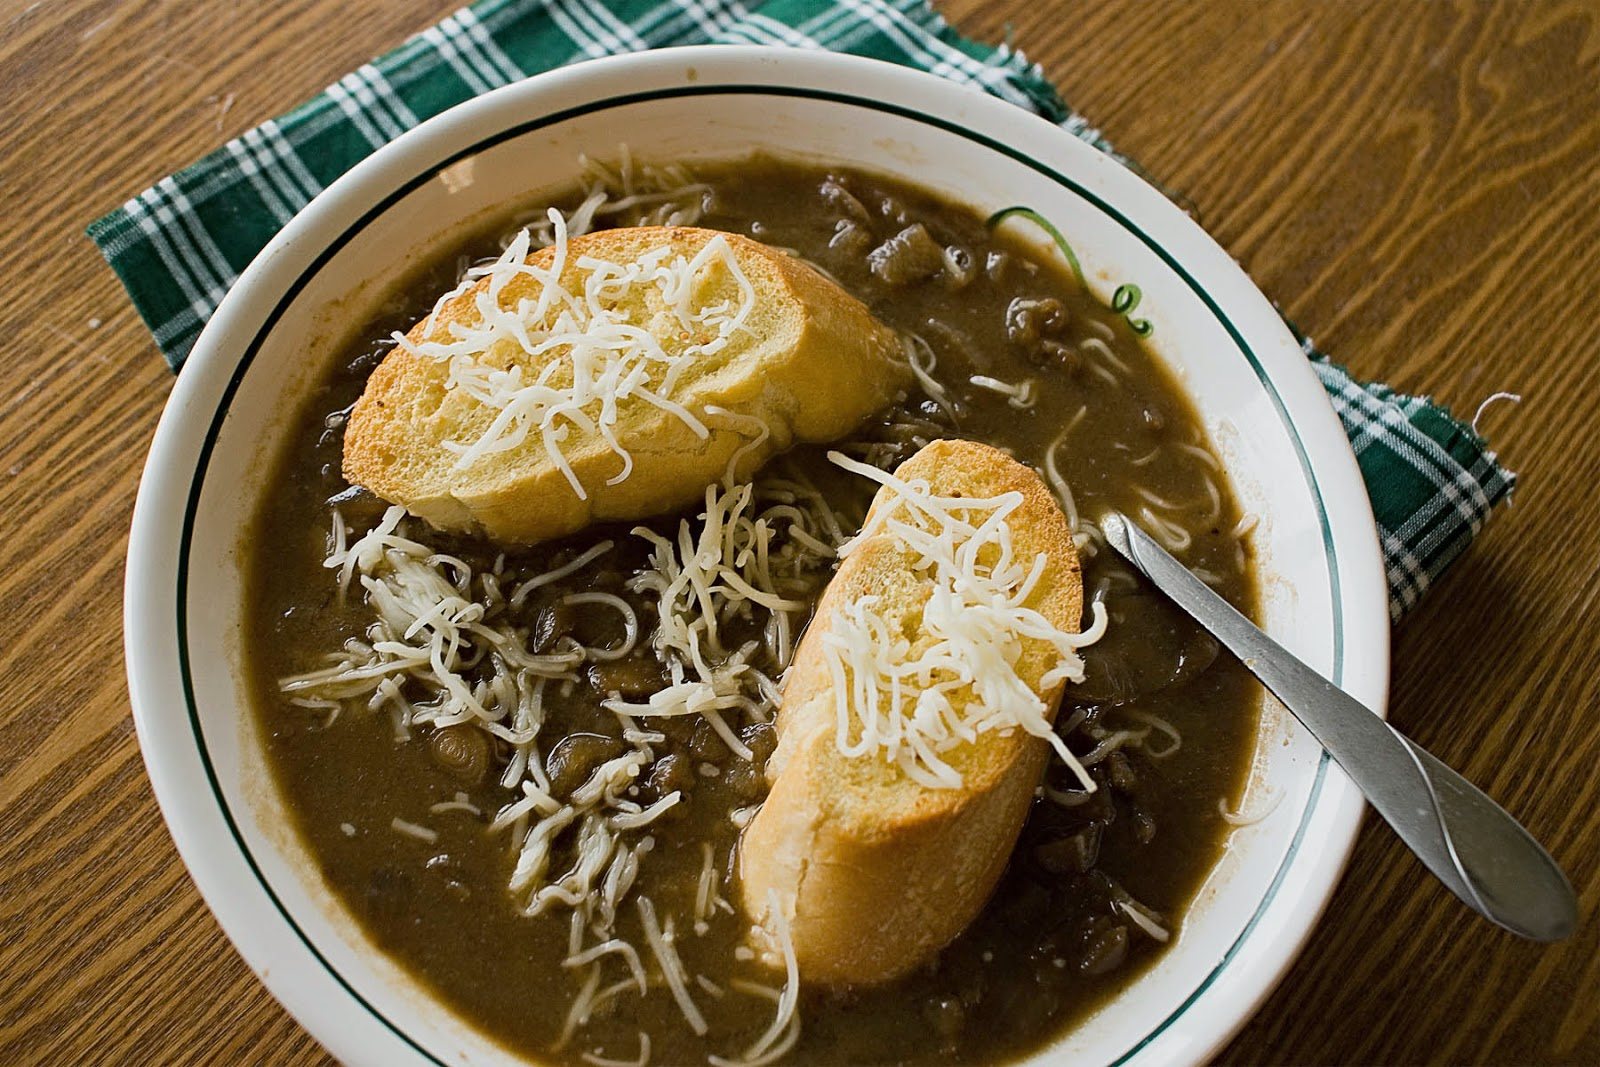 Julia Child's French Onion Soup (Soupe à l'Oignon Gratinée)